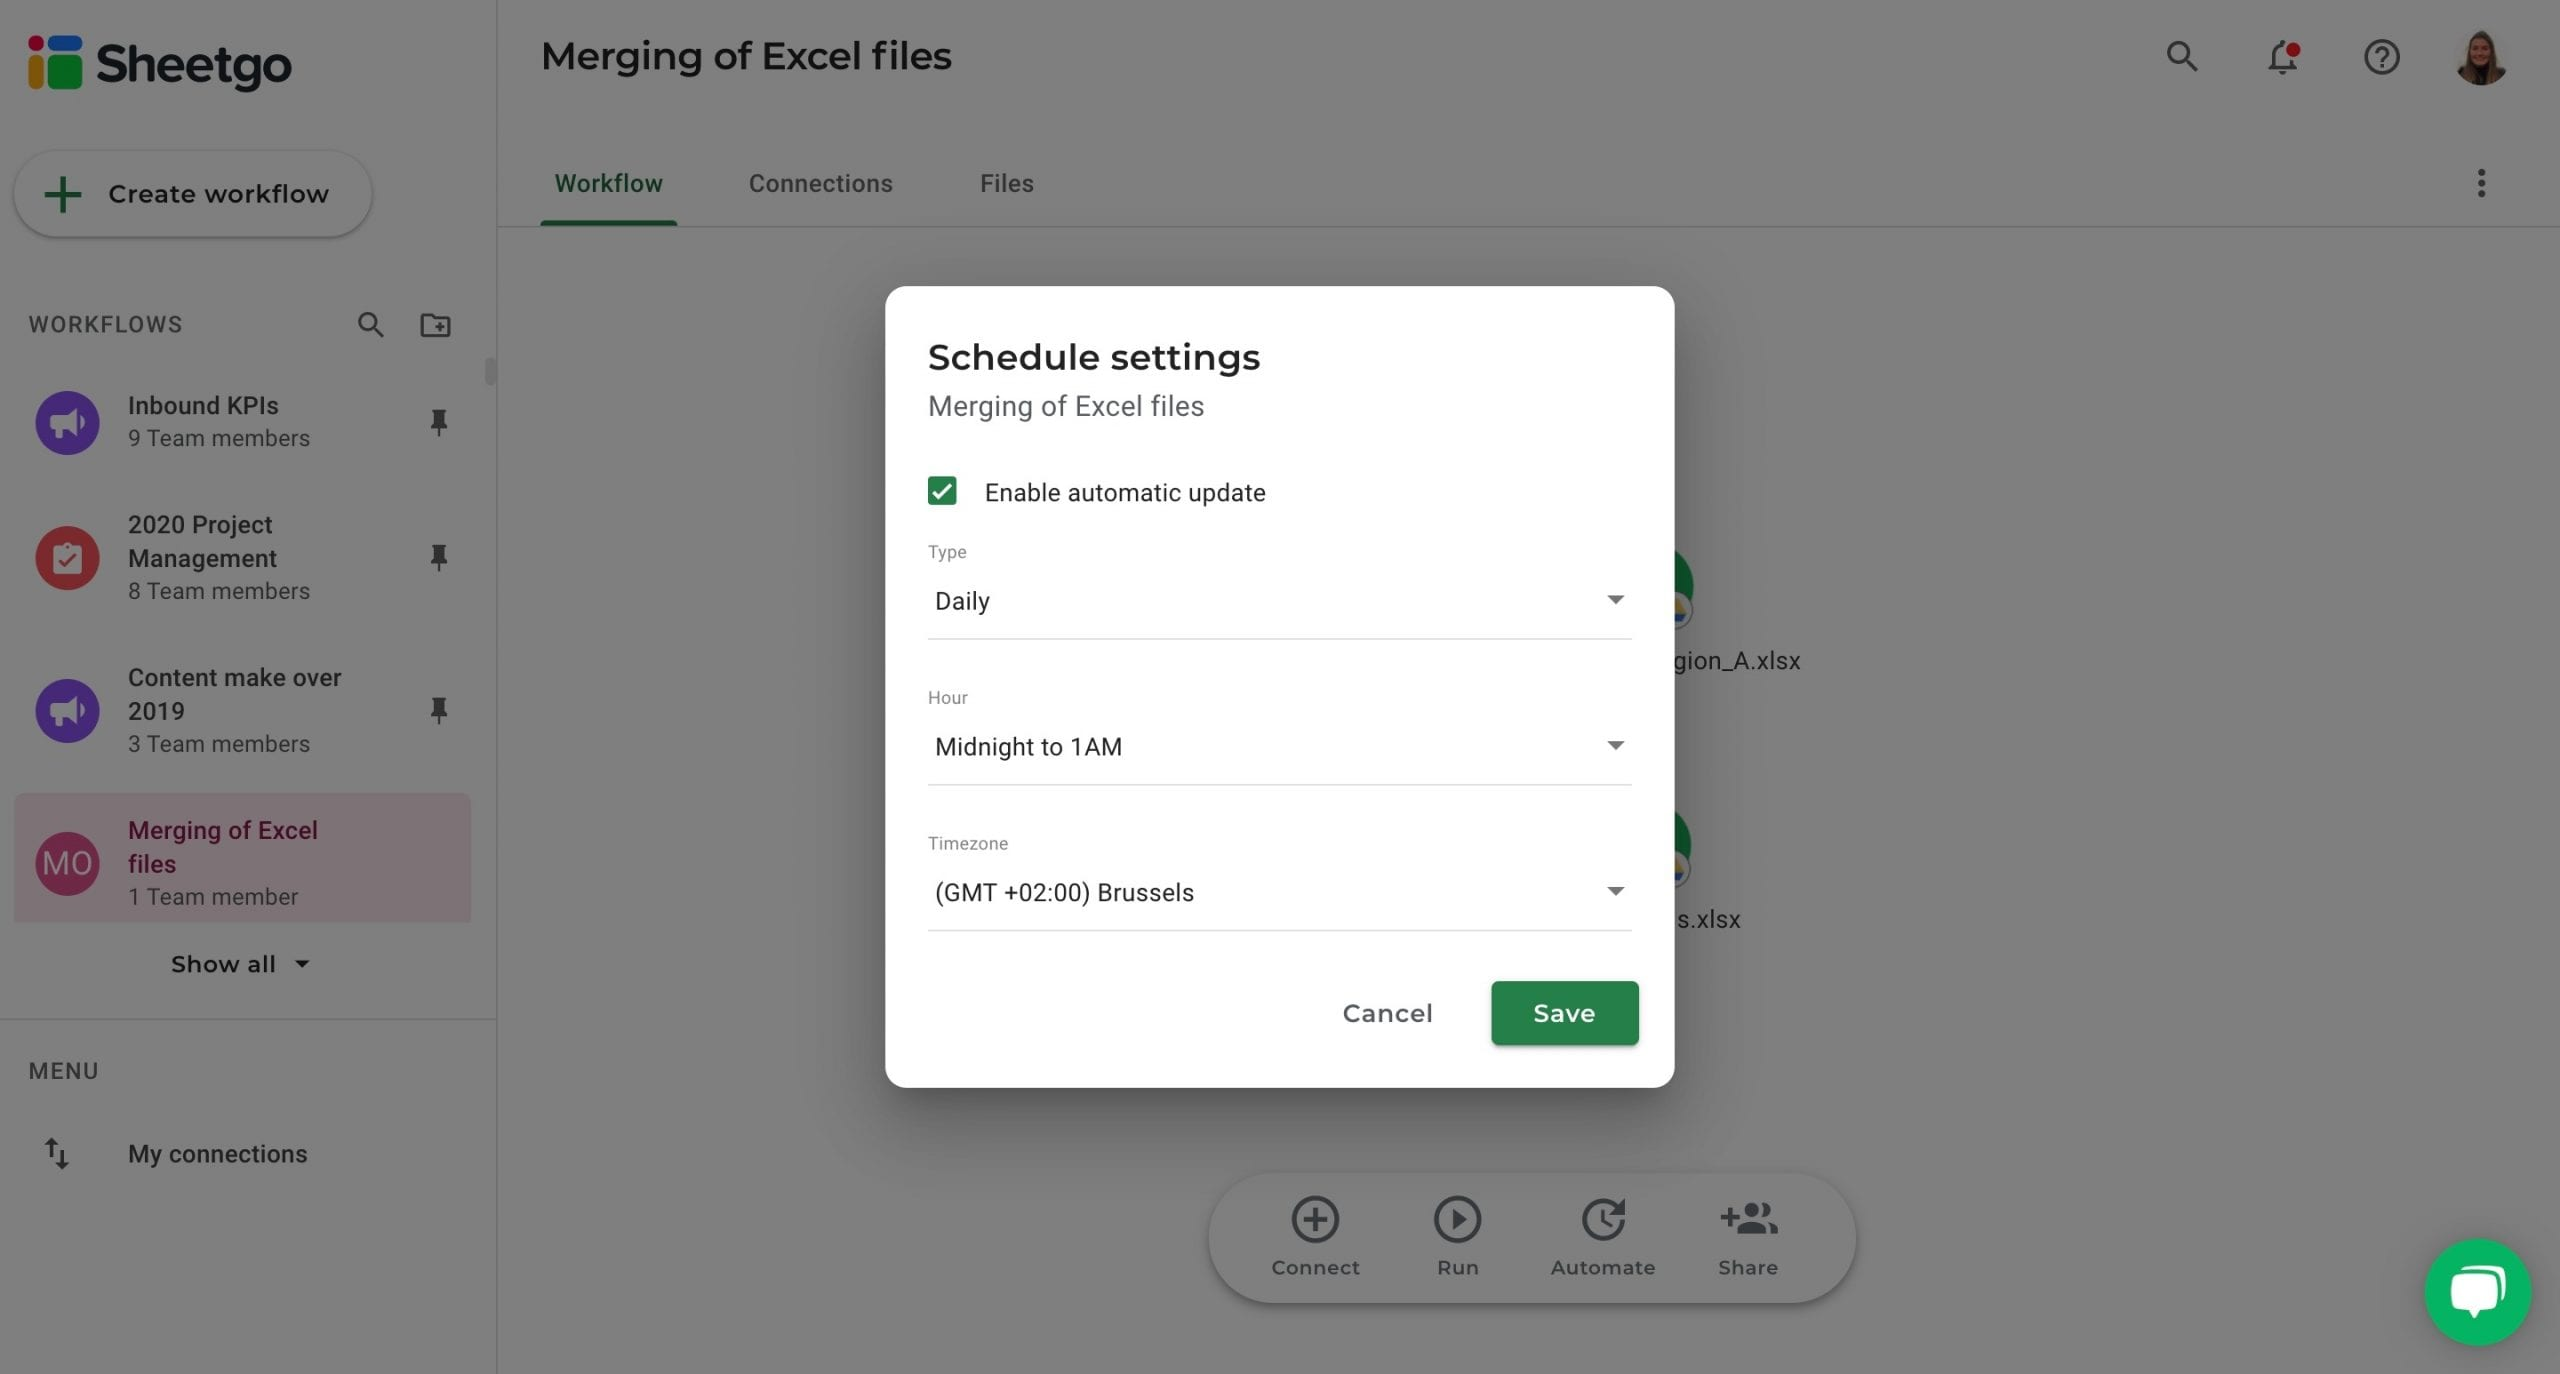 Merging of Excel files automatic updates